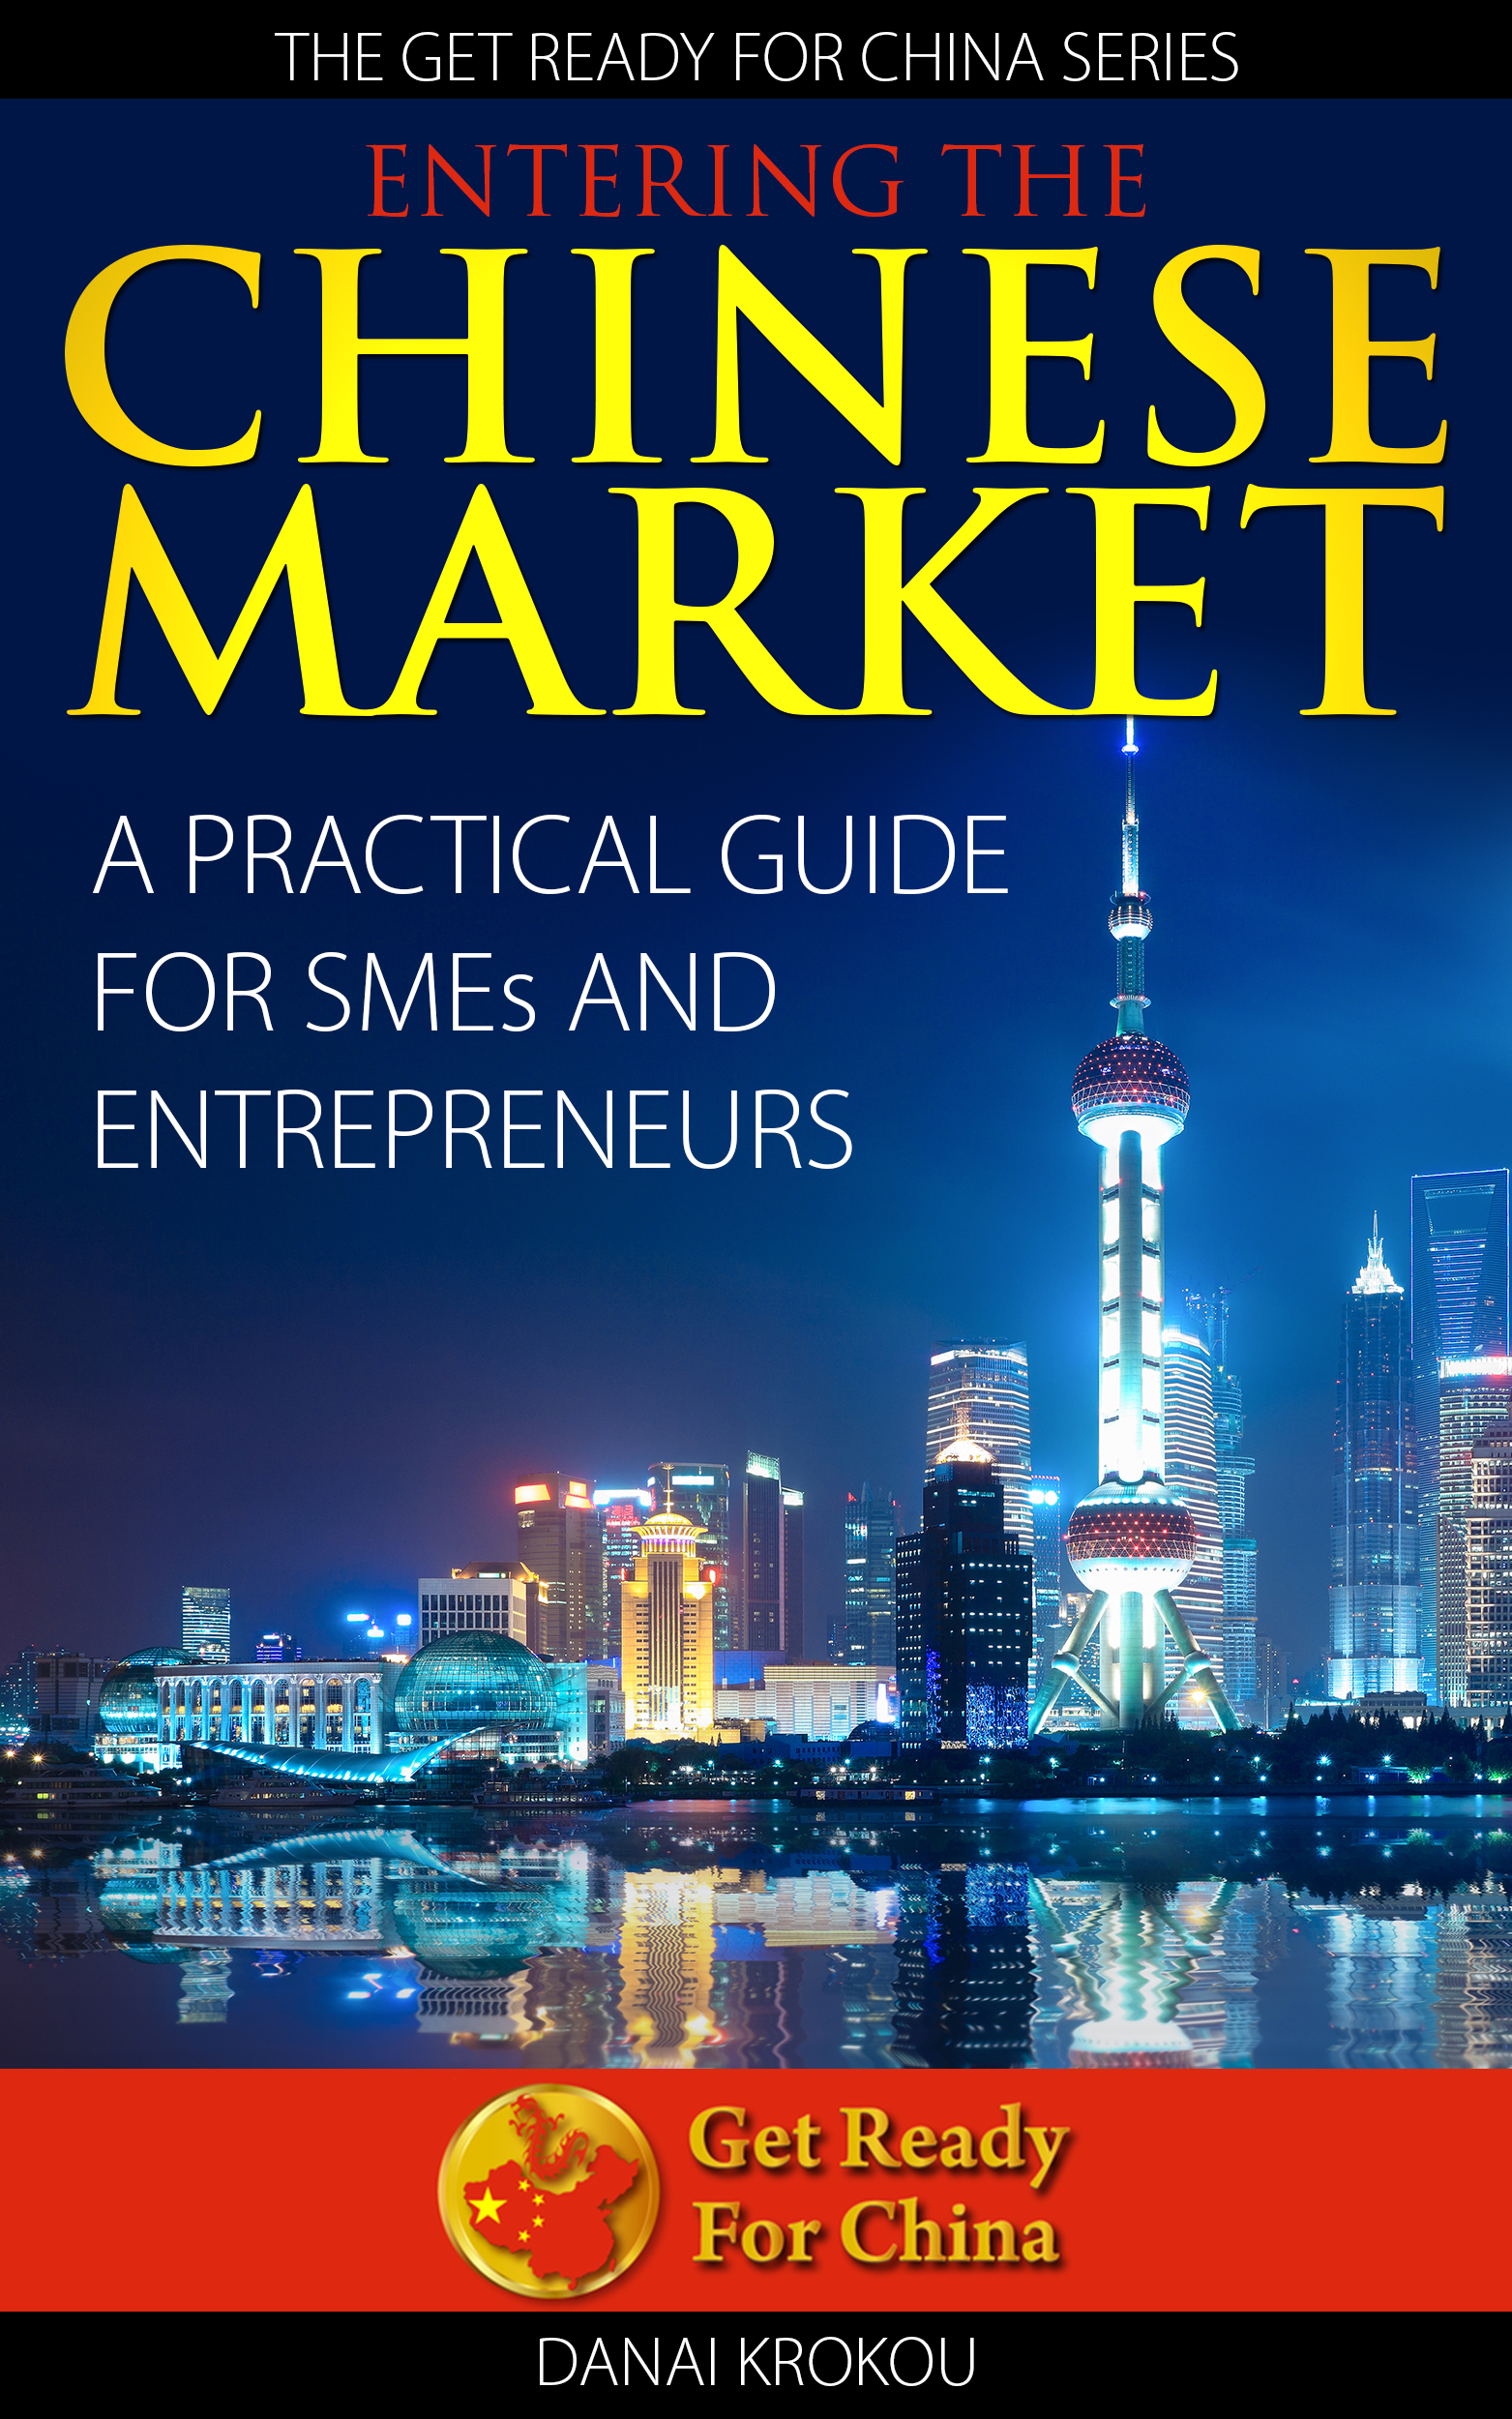 Entering the chinese market: a practical guide for smes and entrepreneurs